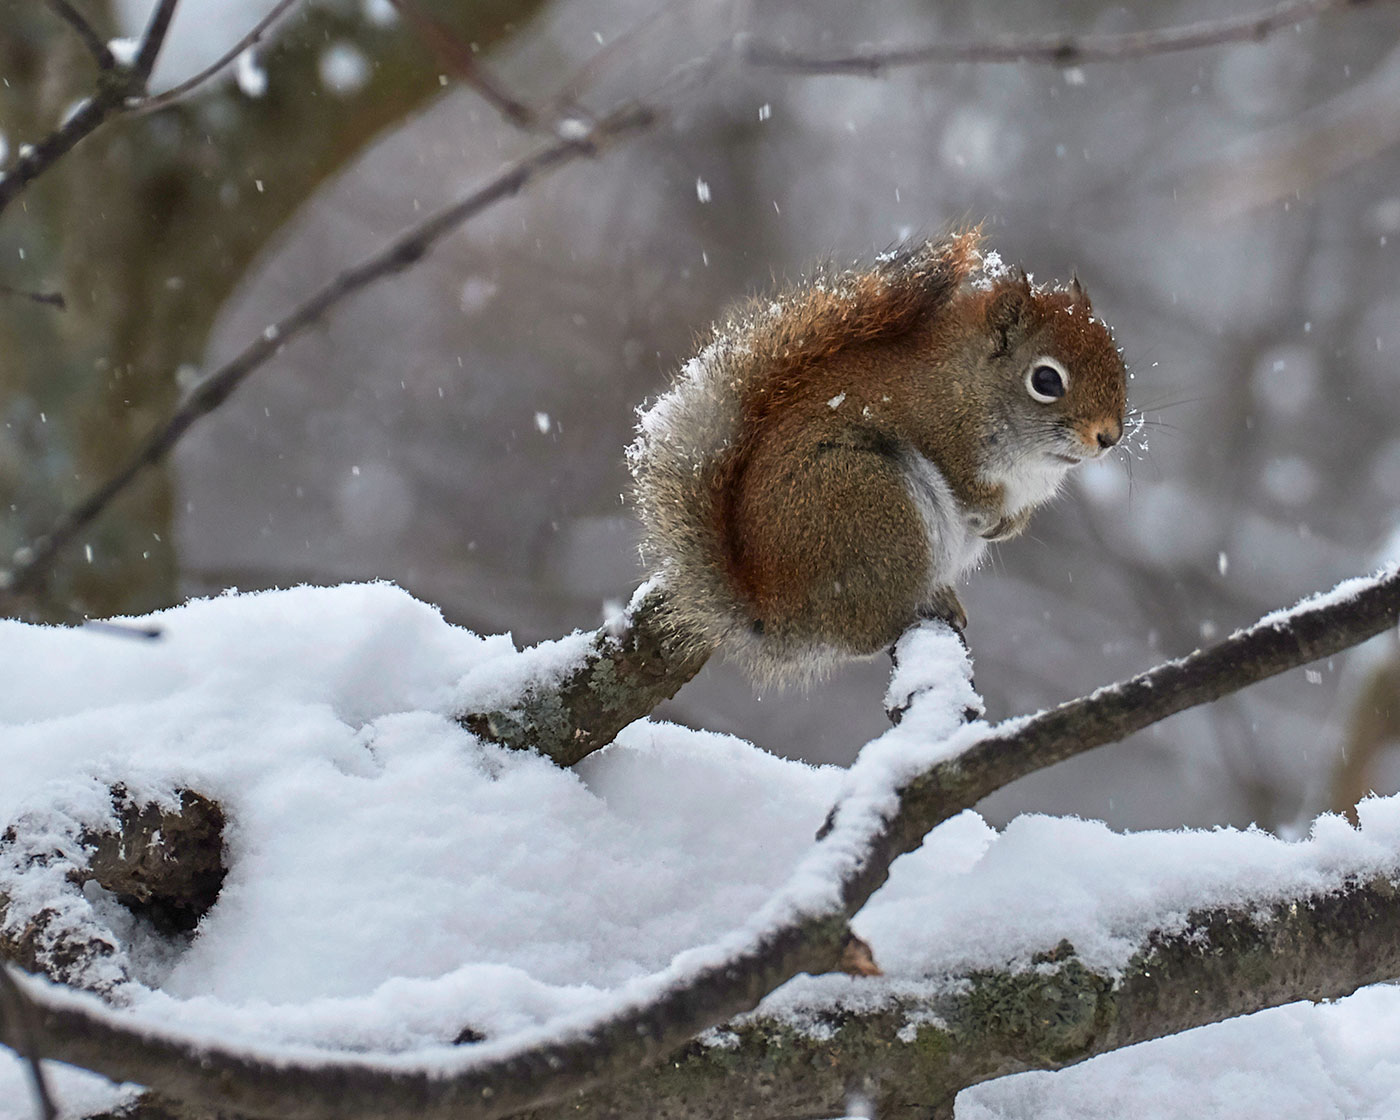 Red squirrel in Old Town by Pam Wells